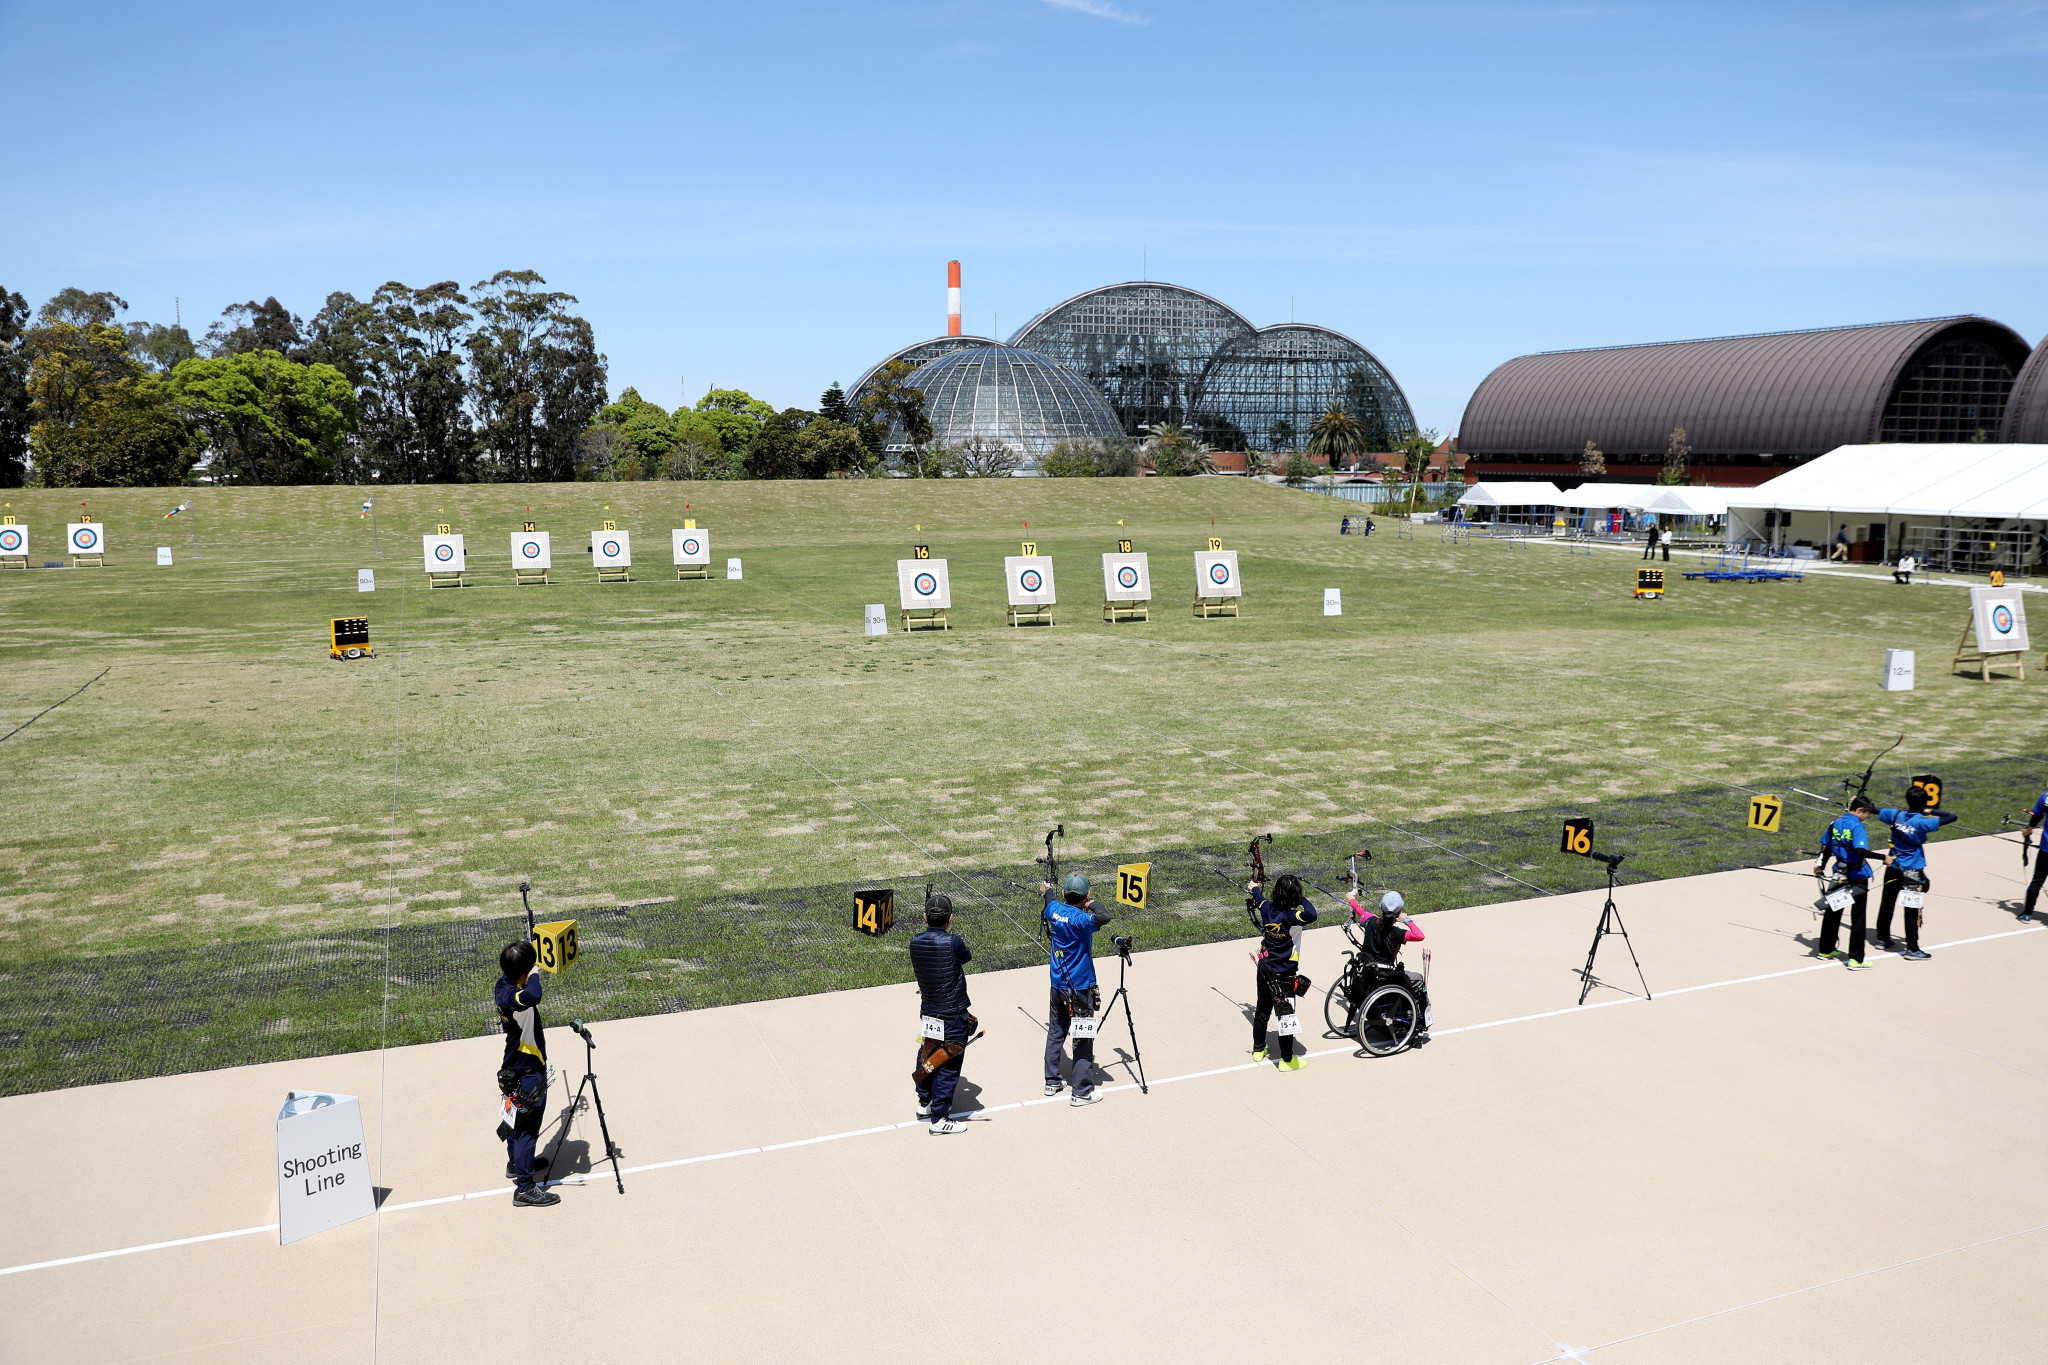 The venue is aimed as hosting archery events and being a public space after the Games ©Tokyo 2020